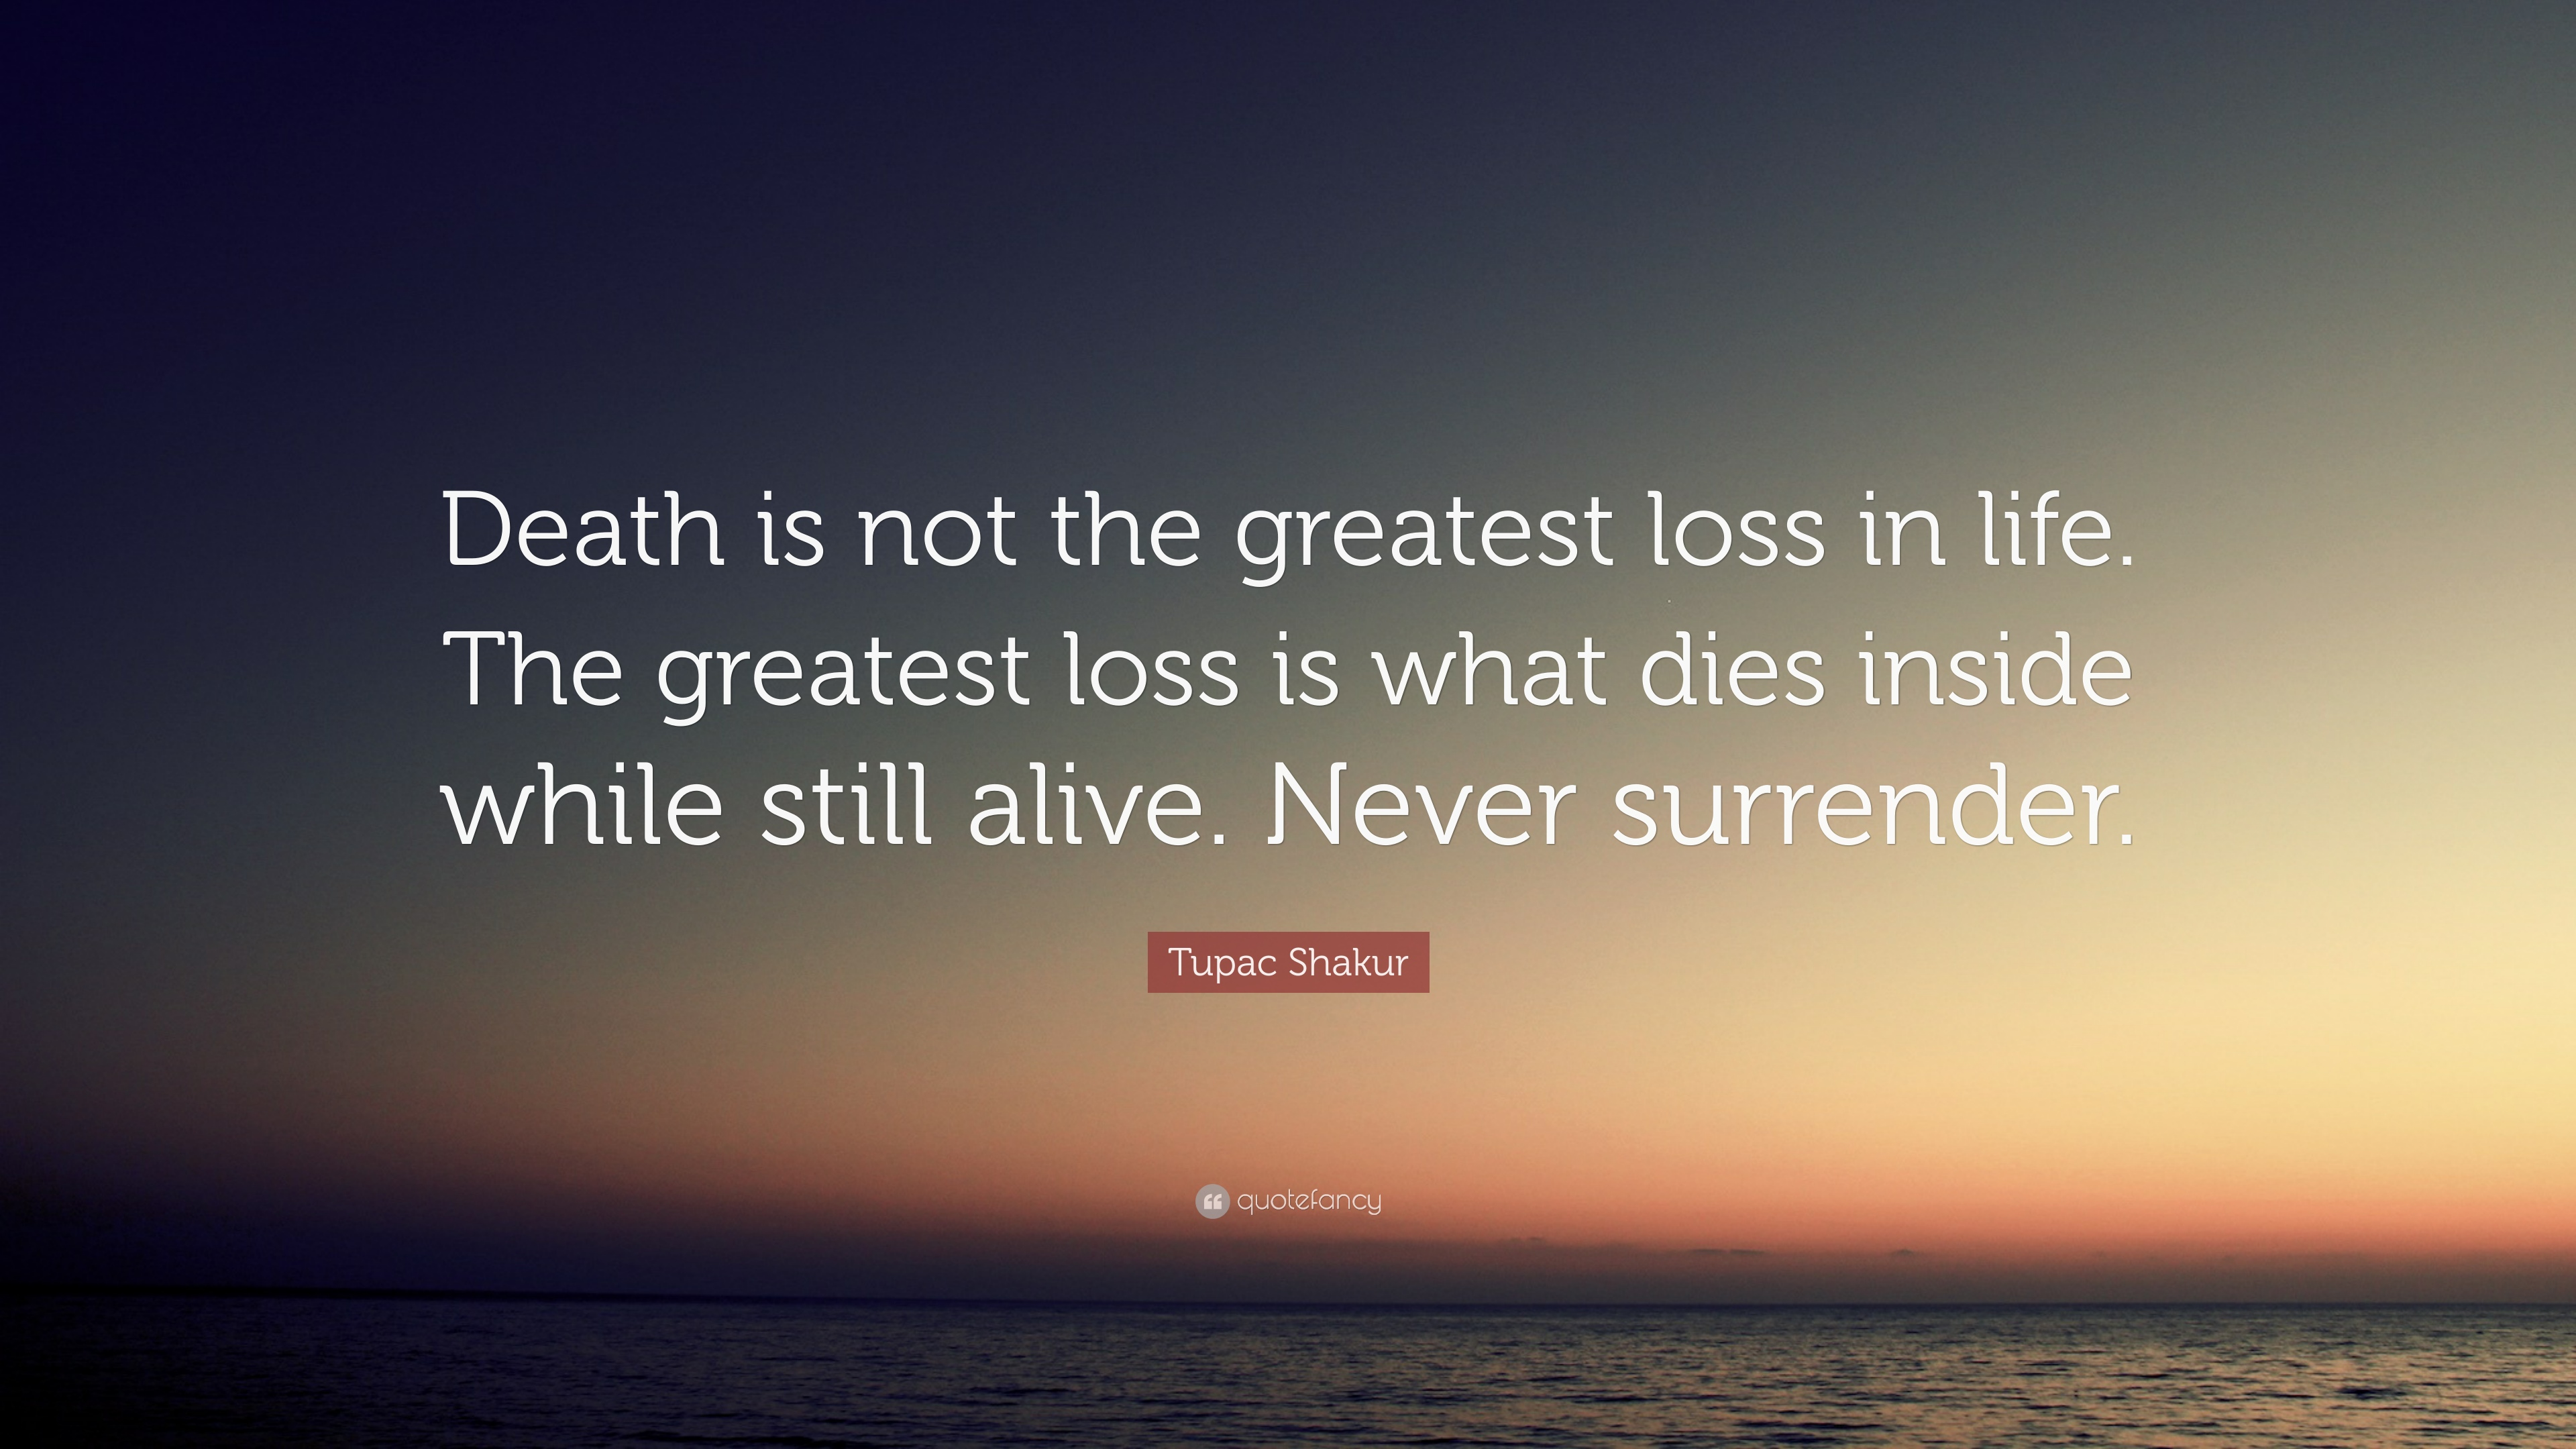 Merveilleux Tupac Shakur Quote: U201cDeath Is Not The Greatest Loss In Life. The Greatest